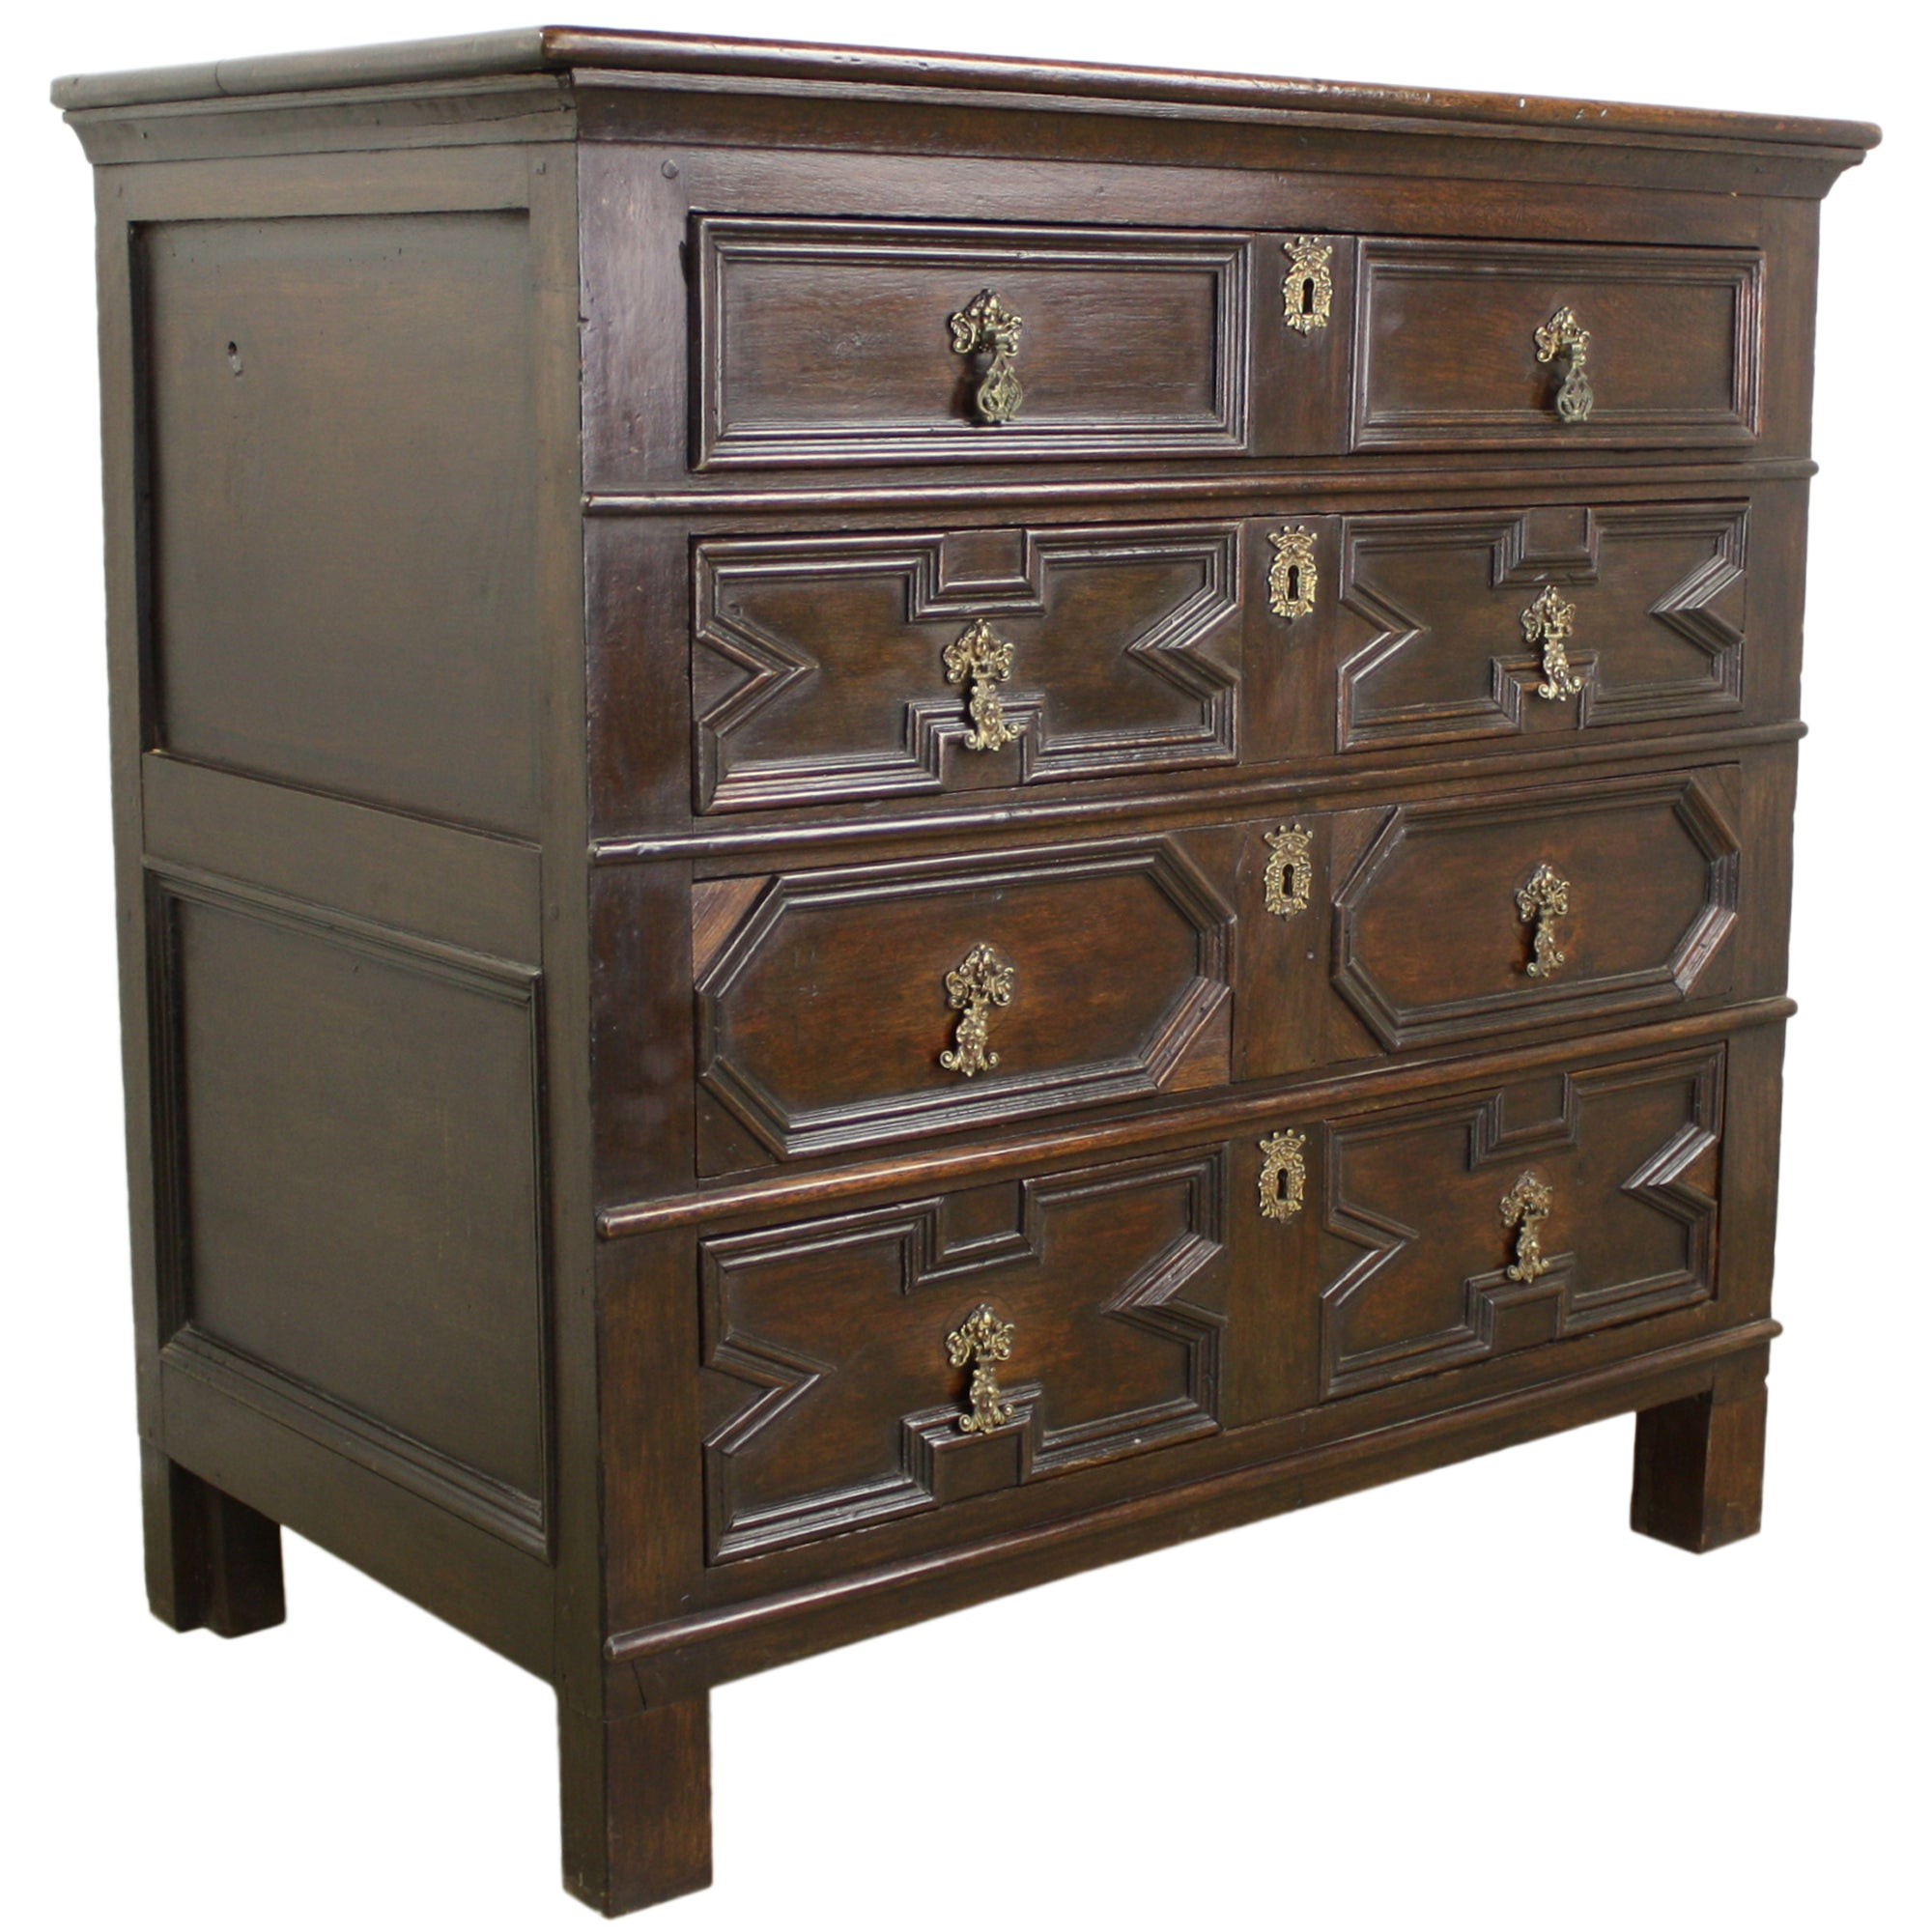 English Period Oak Chest of Drawers